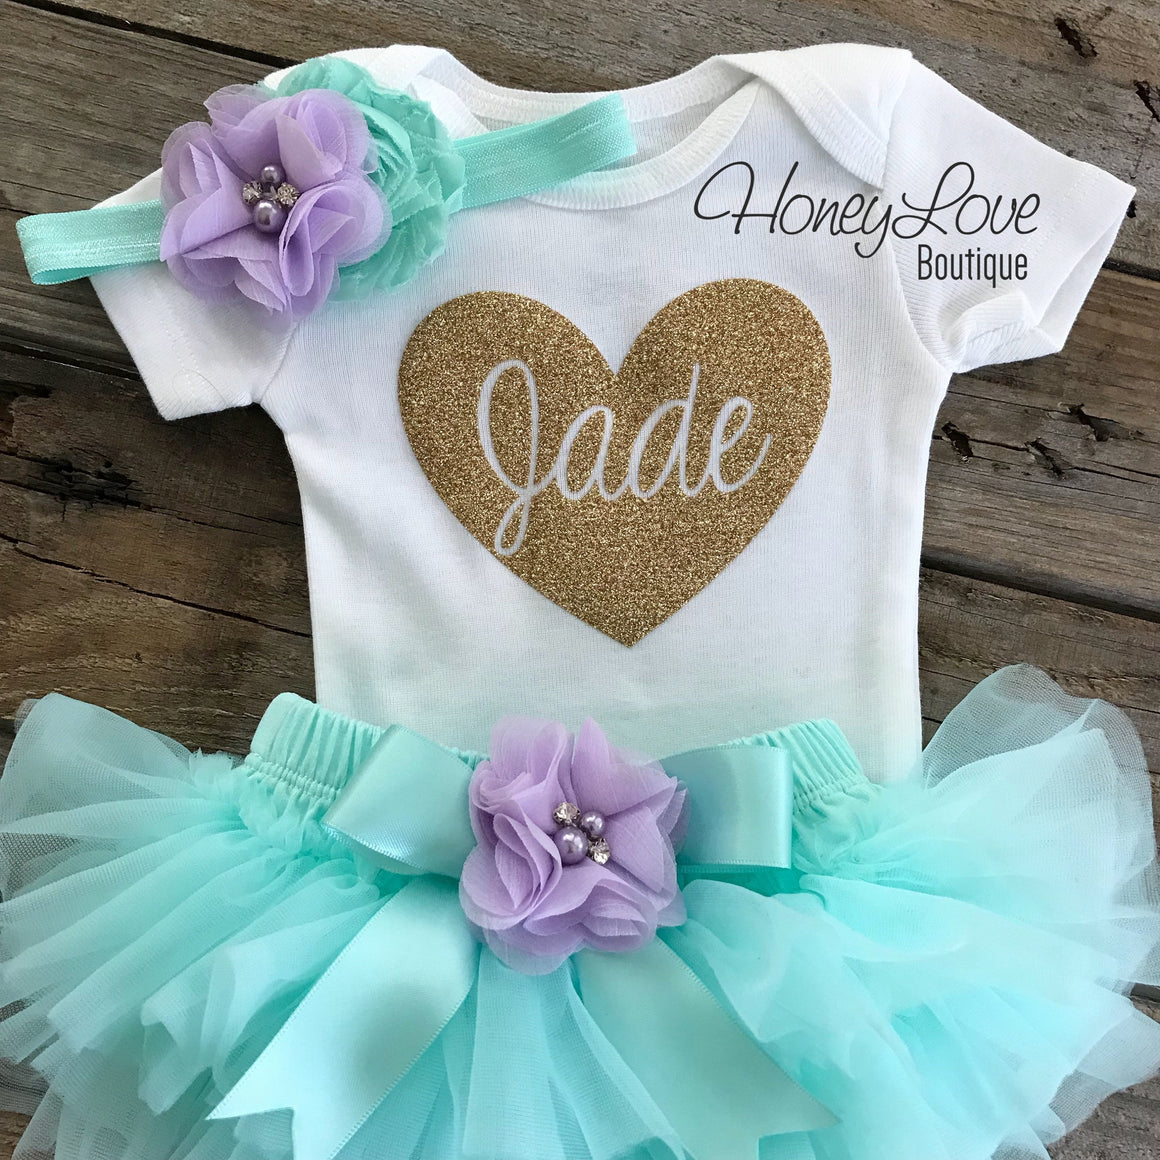 PERSONALIZED Name inside Heart - Gold Glitter, Mint/Aqua and Lavender Purple - HoneyLoveBoutique